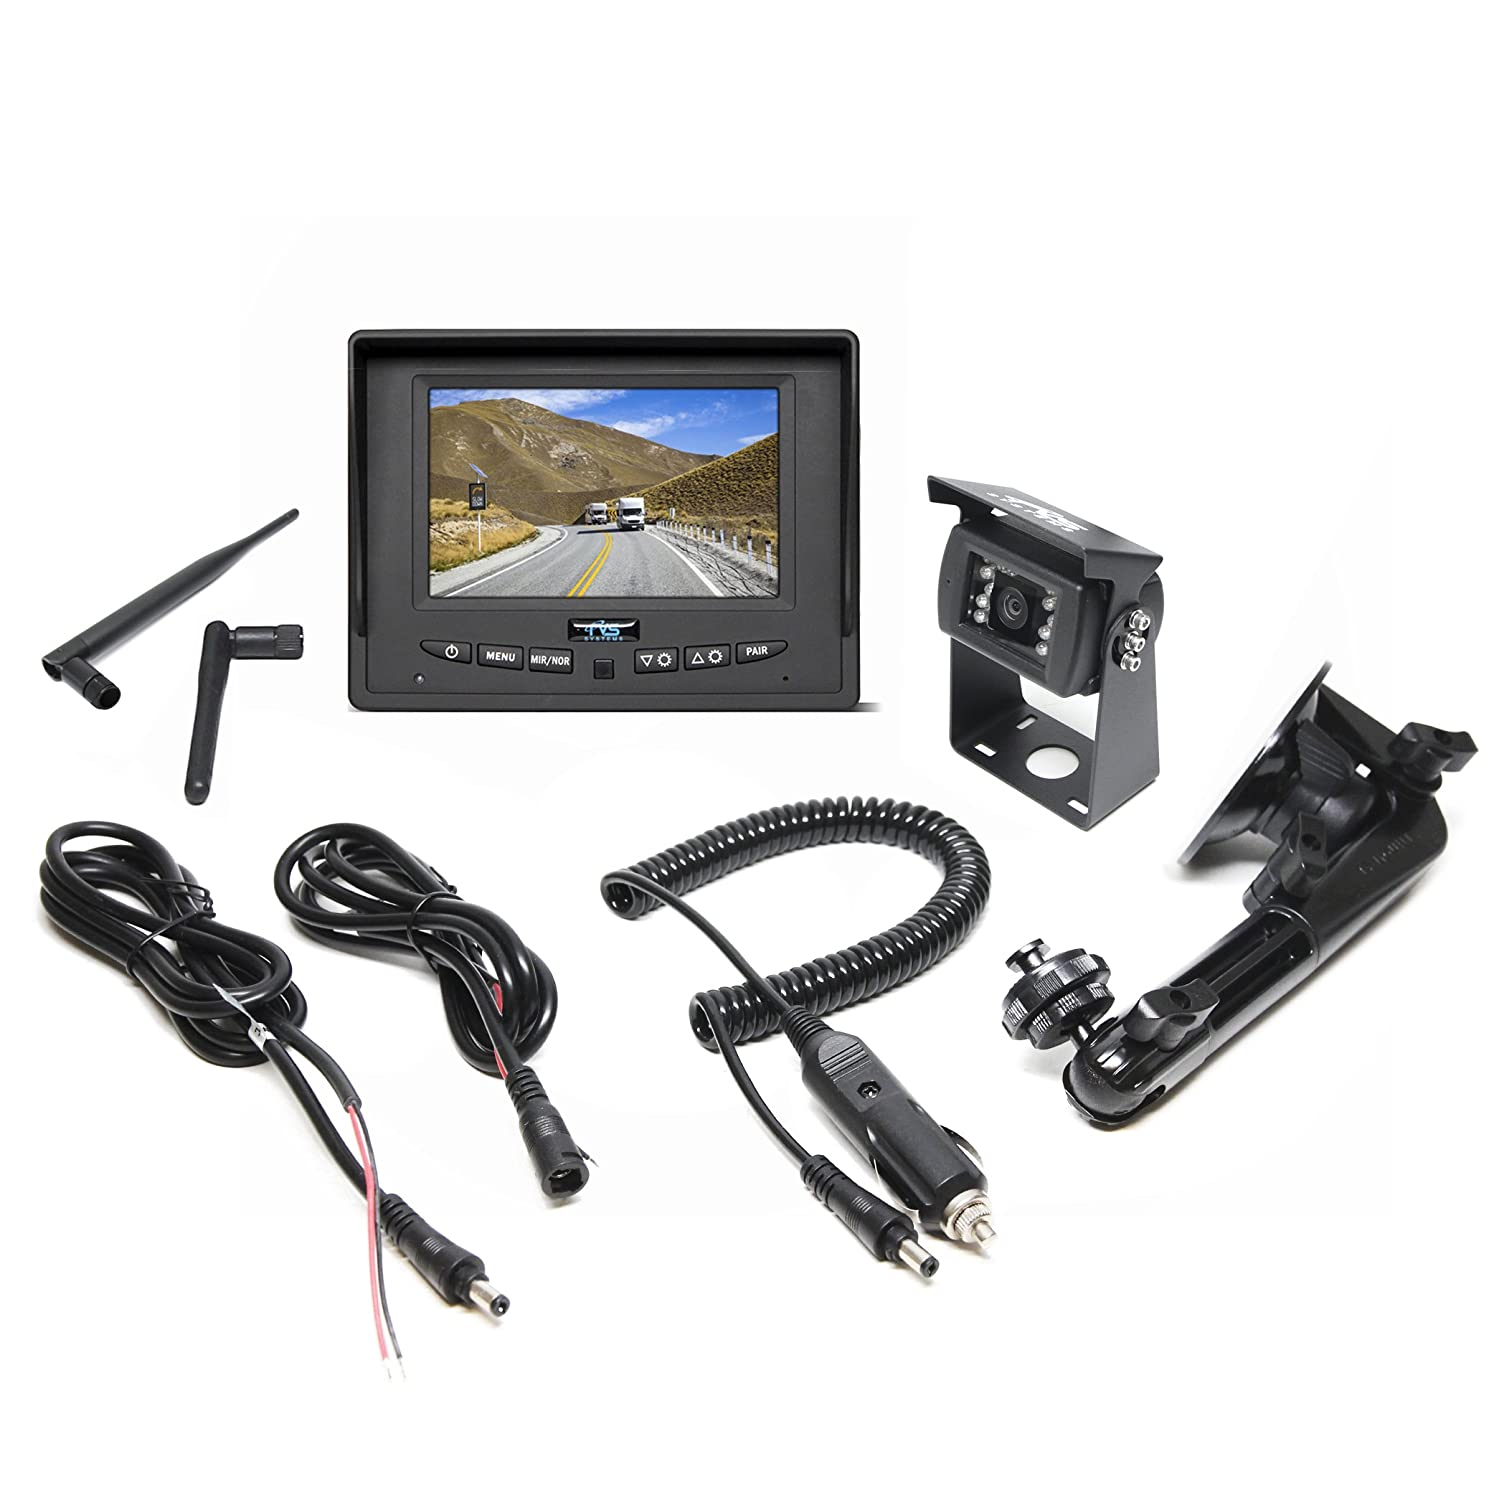 Amazon.com: Wireless Backup Camera System for RV, Truck, Bus ...